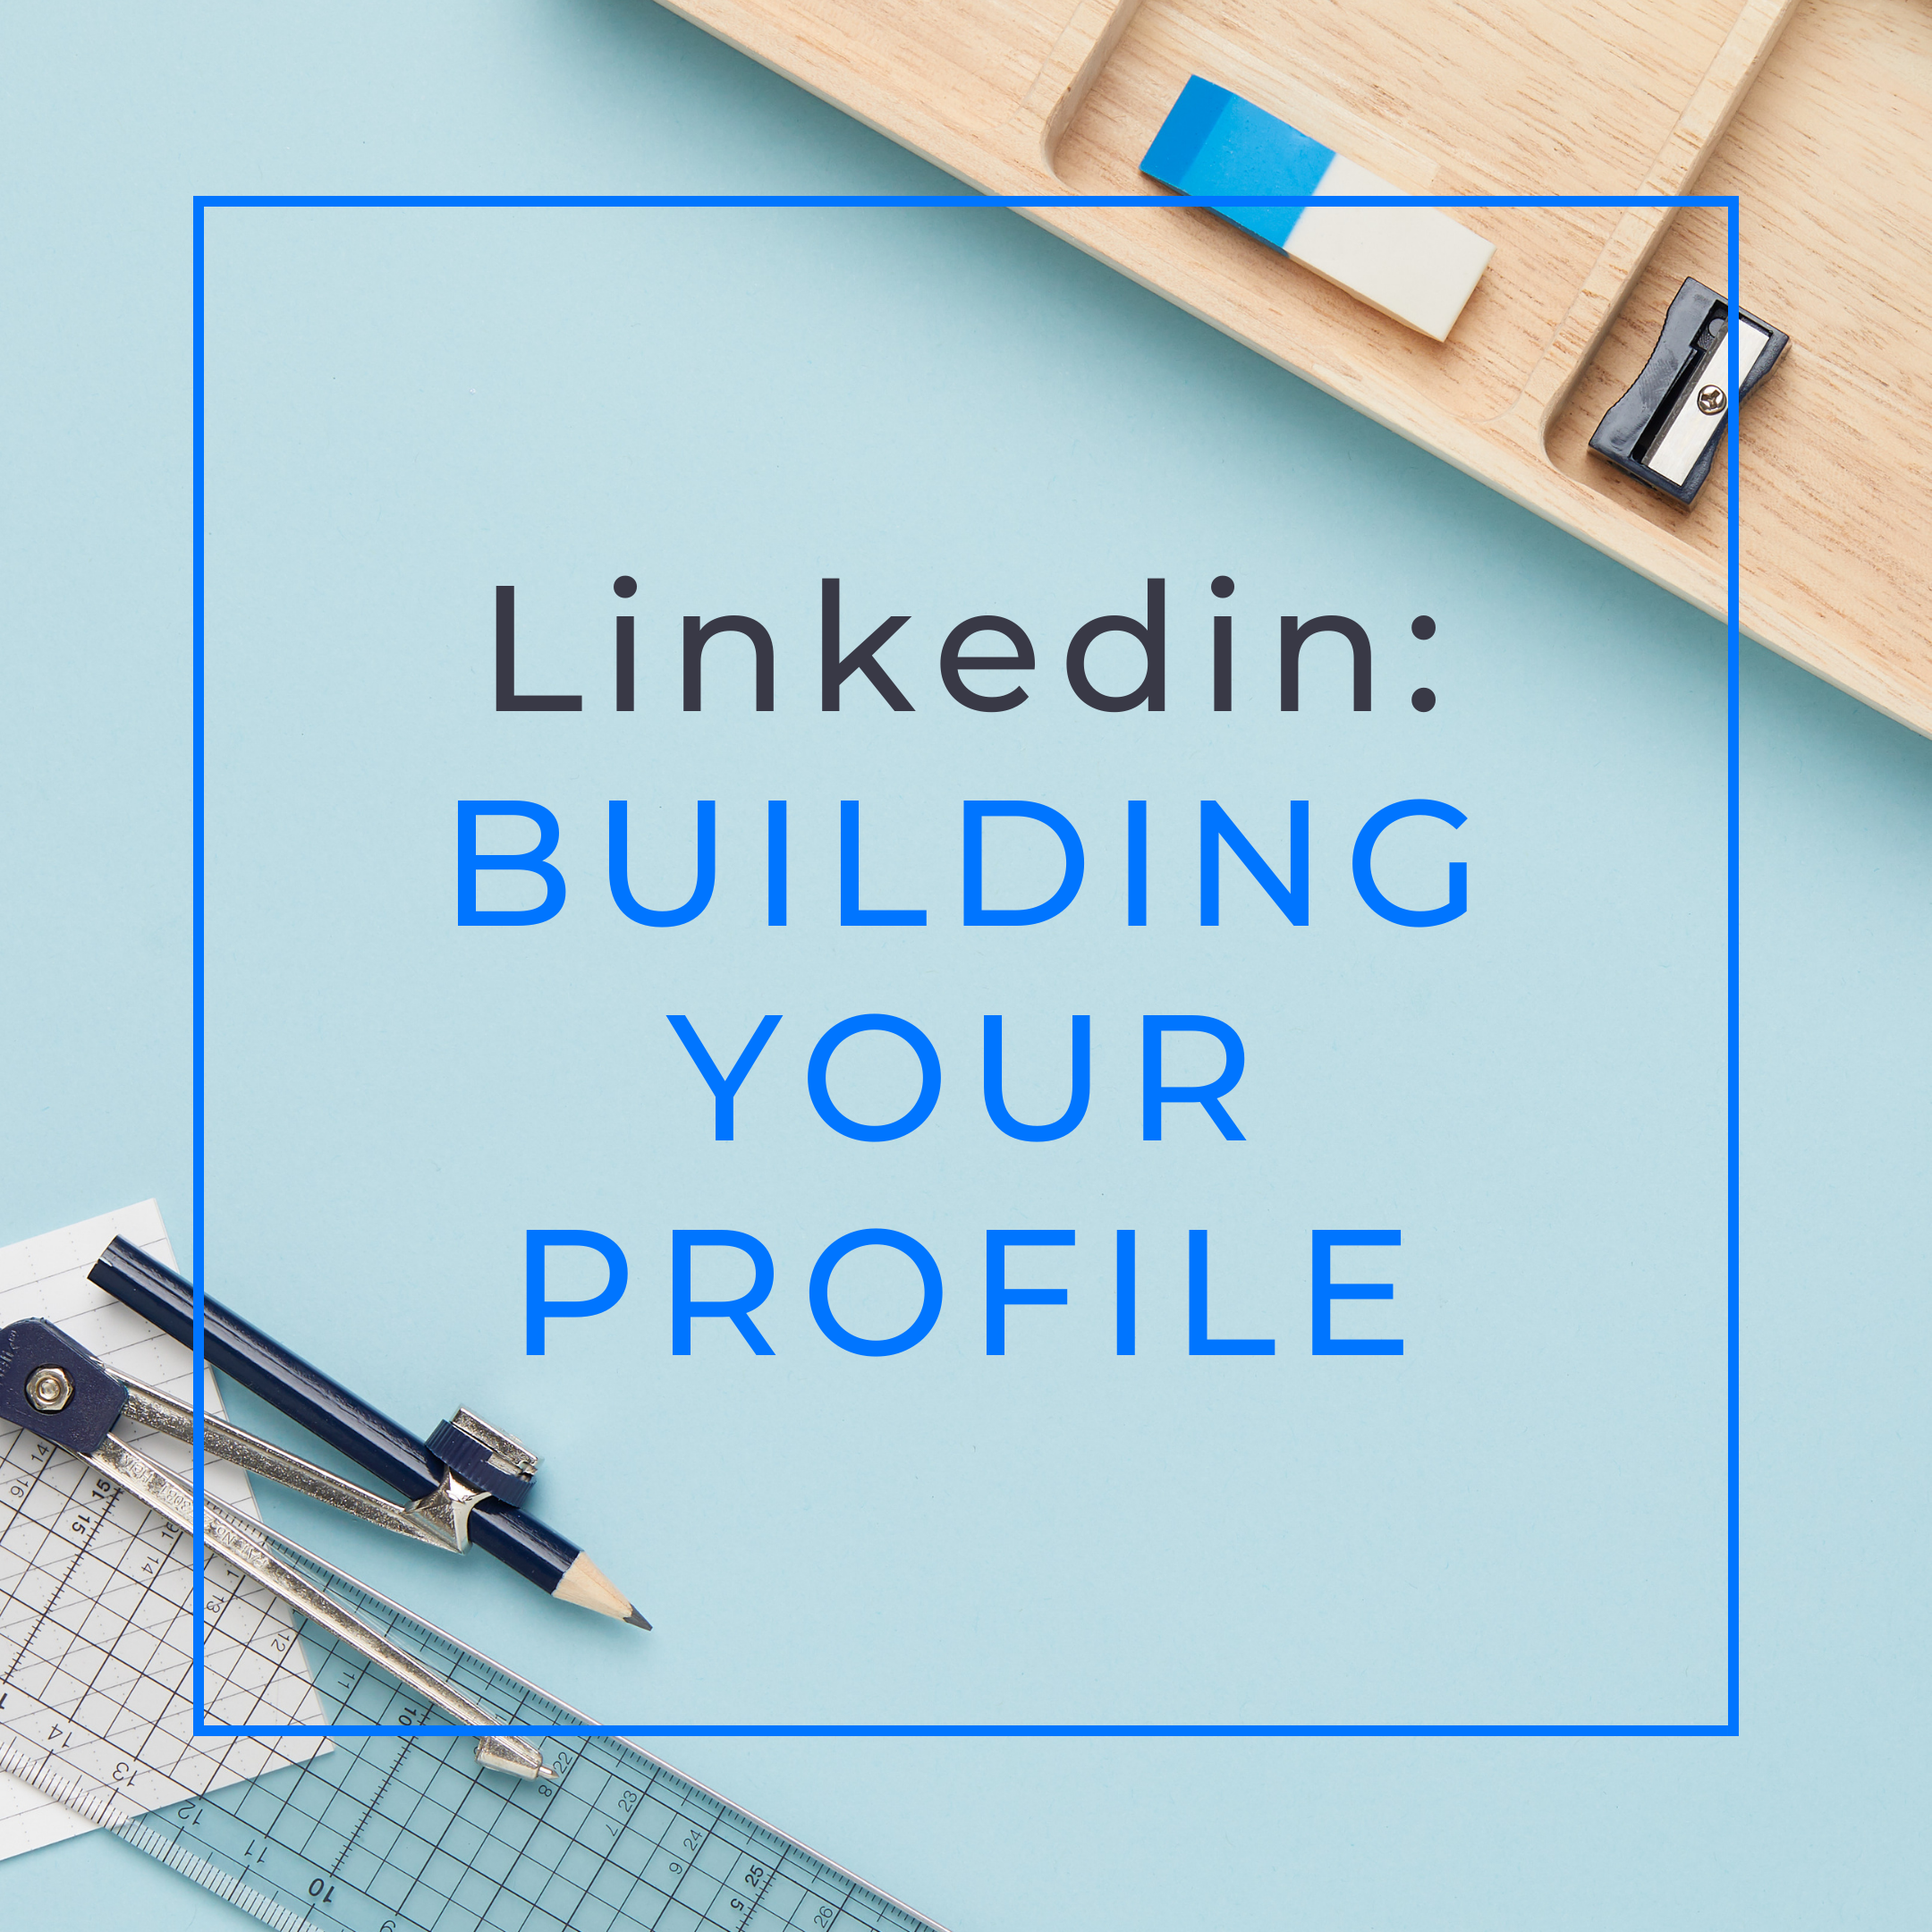 Light blue background, with math supplies in the bottom left corner, and office supplies in the top right corner. Centered is text that reads Linkedin: Building your Profile.